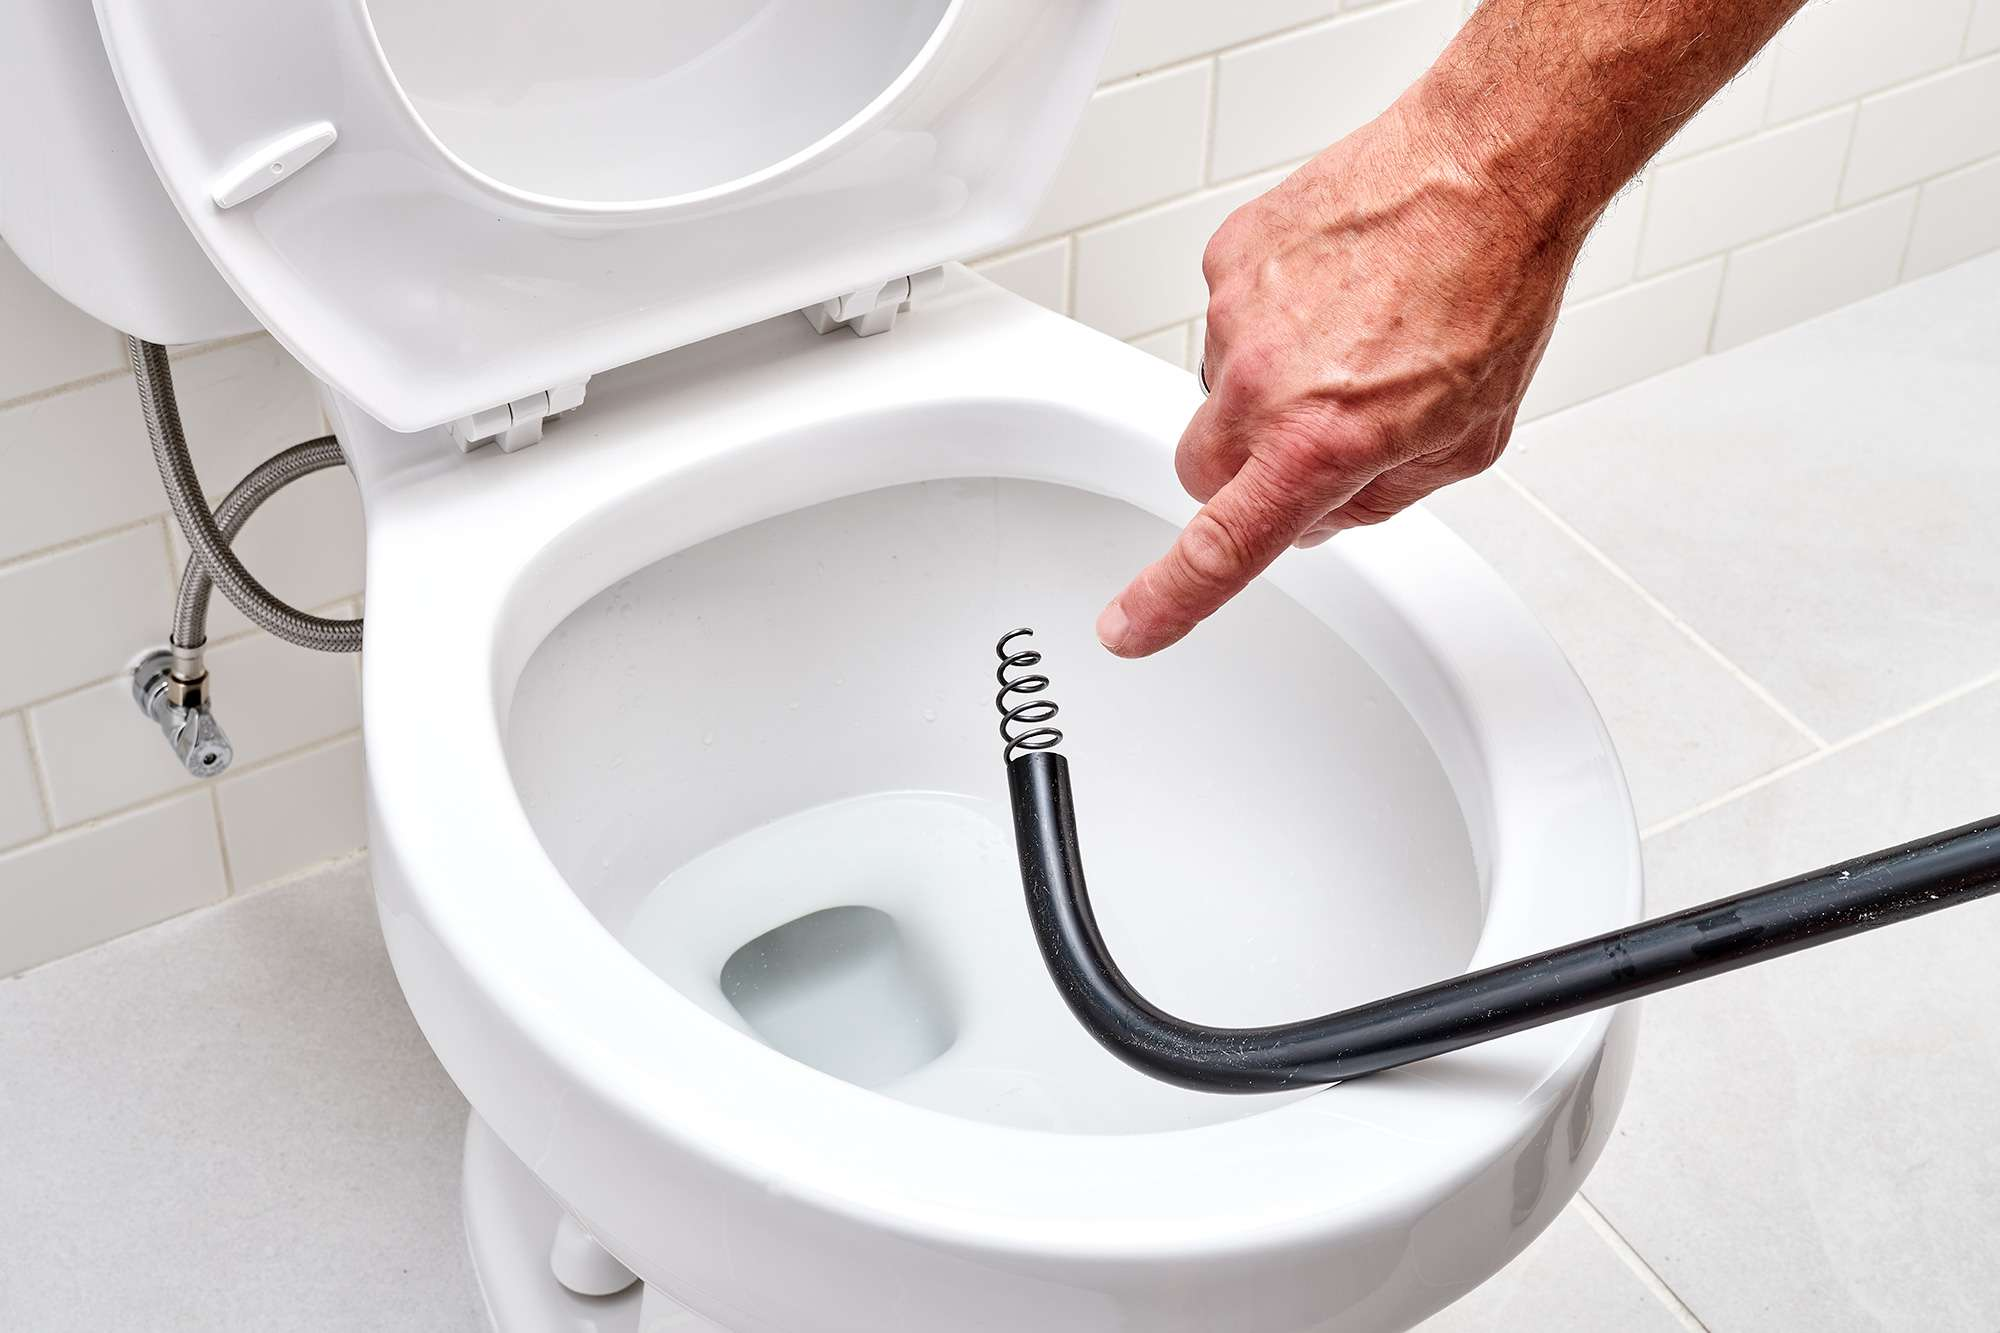 Toilet auger placed on toilet bowl with curled cable showing at end